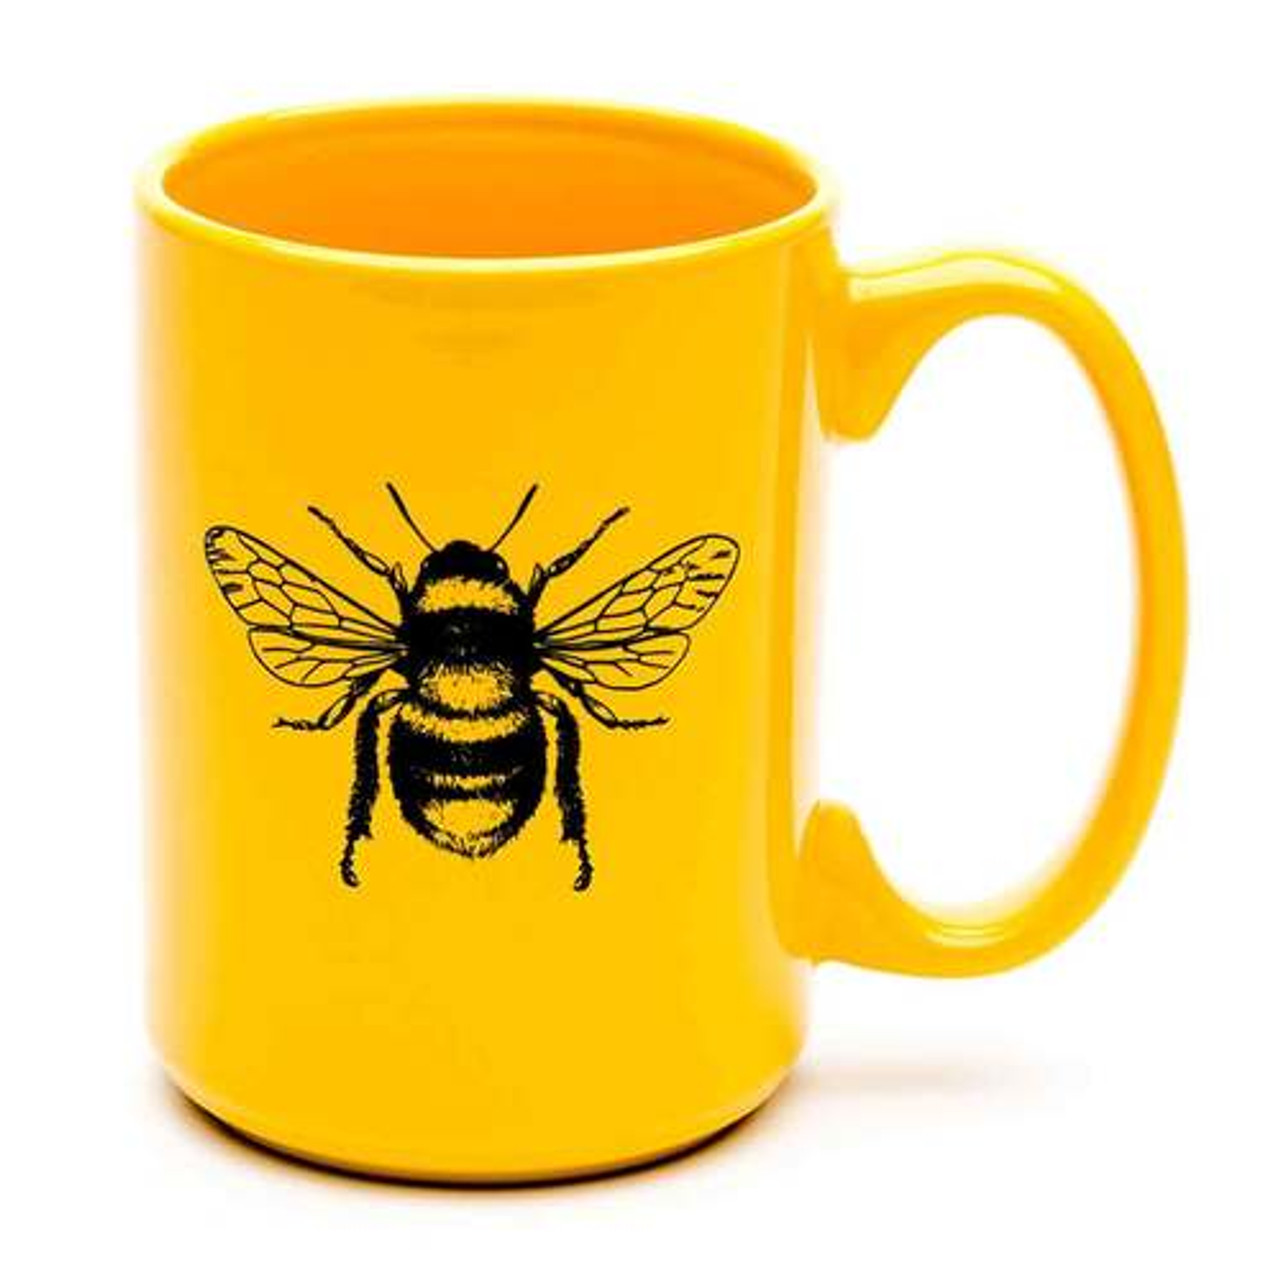 15oz Yellow Coffee Mug with Bee